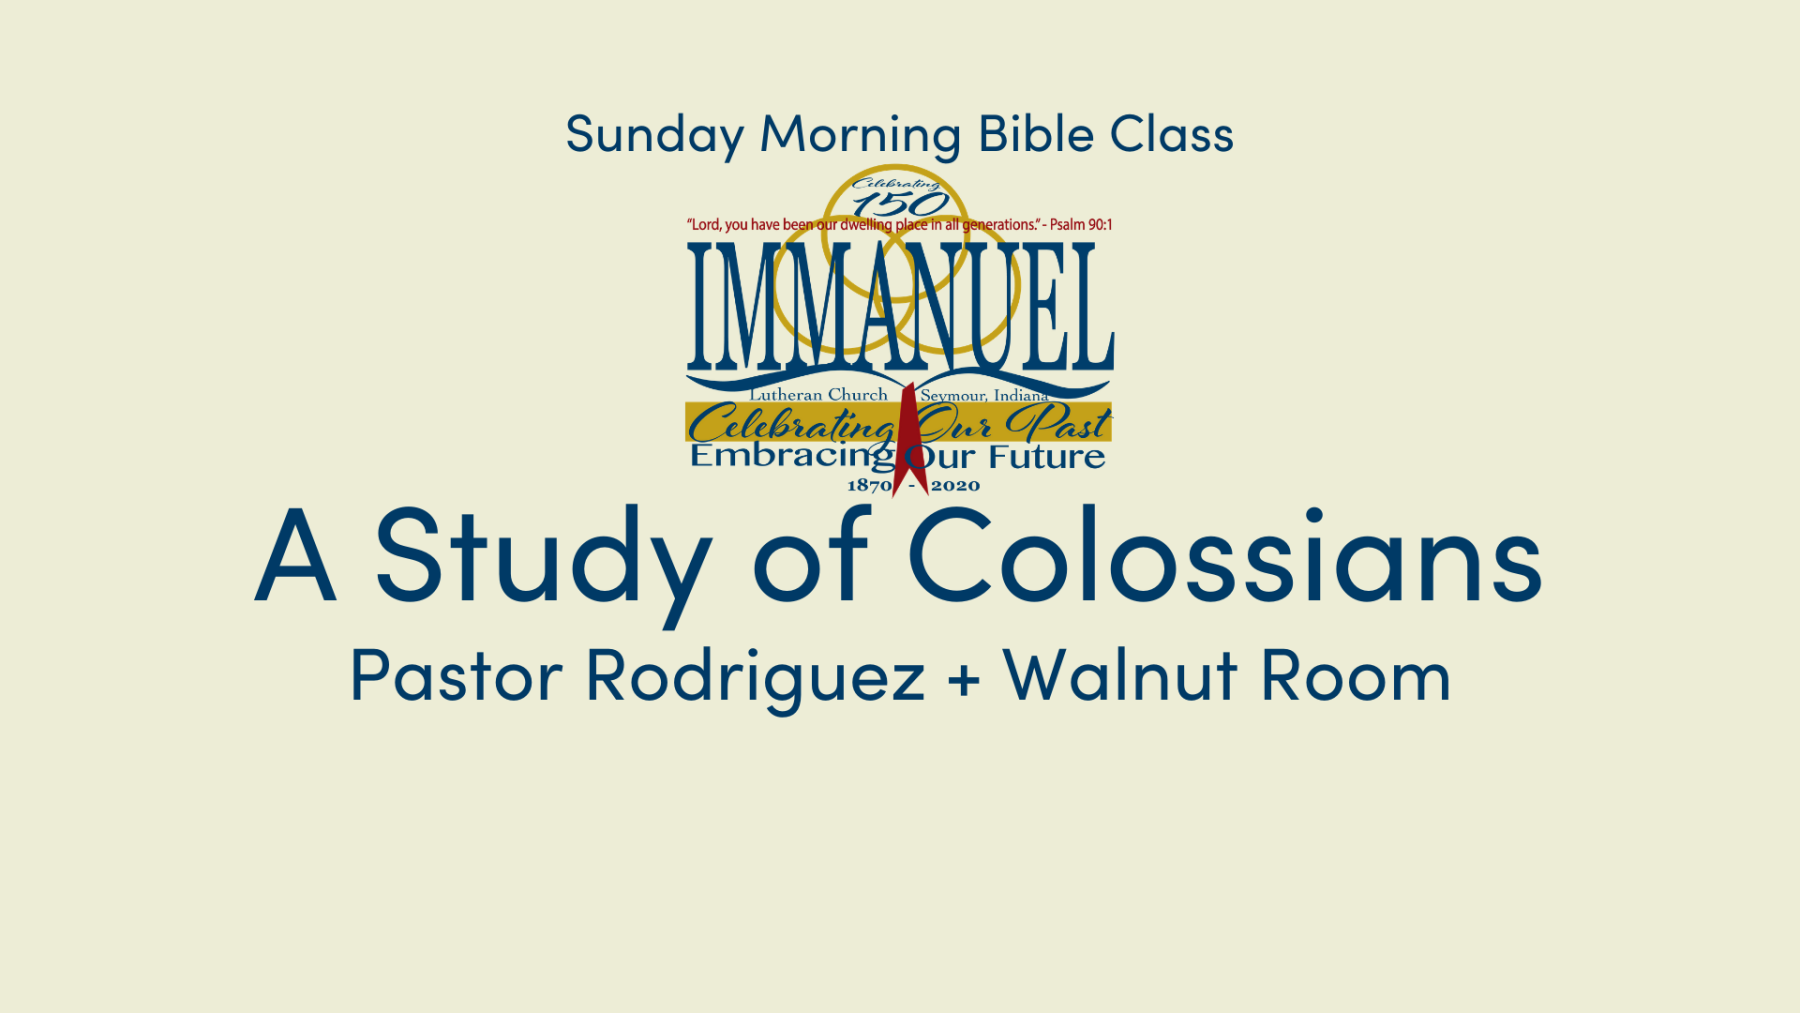 A Study of Colossians